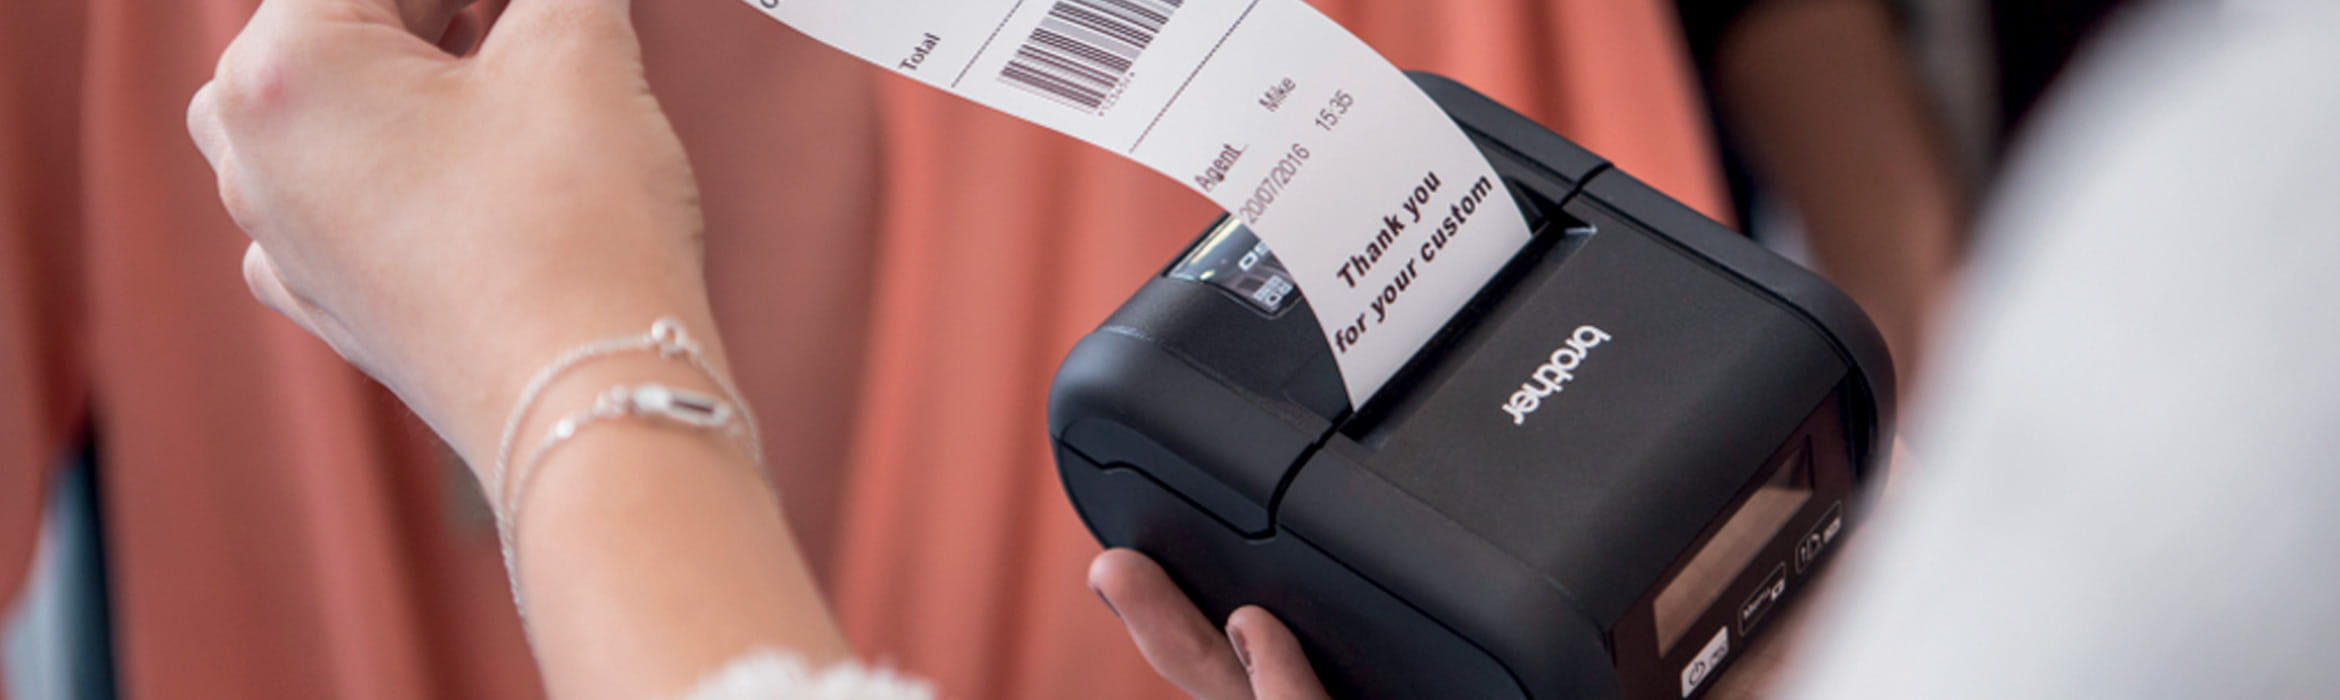 Brother RJ series label printer for queue busting and receipt printing